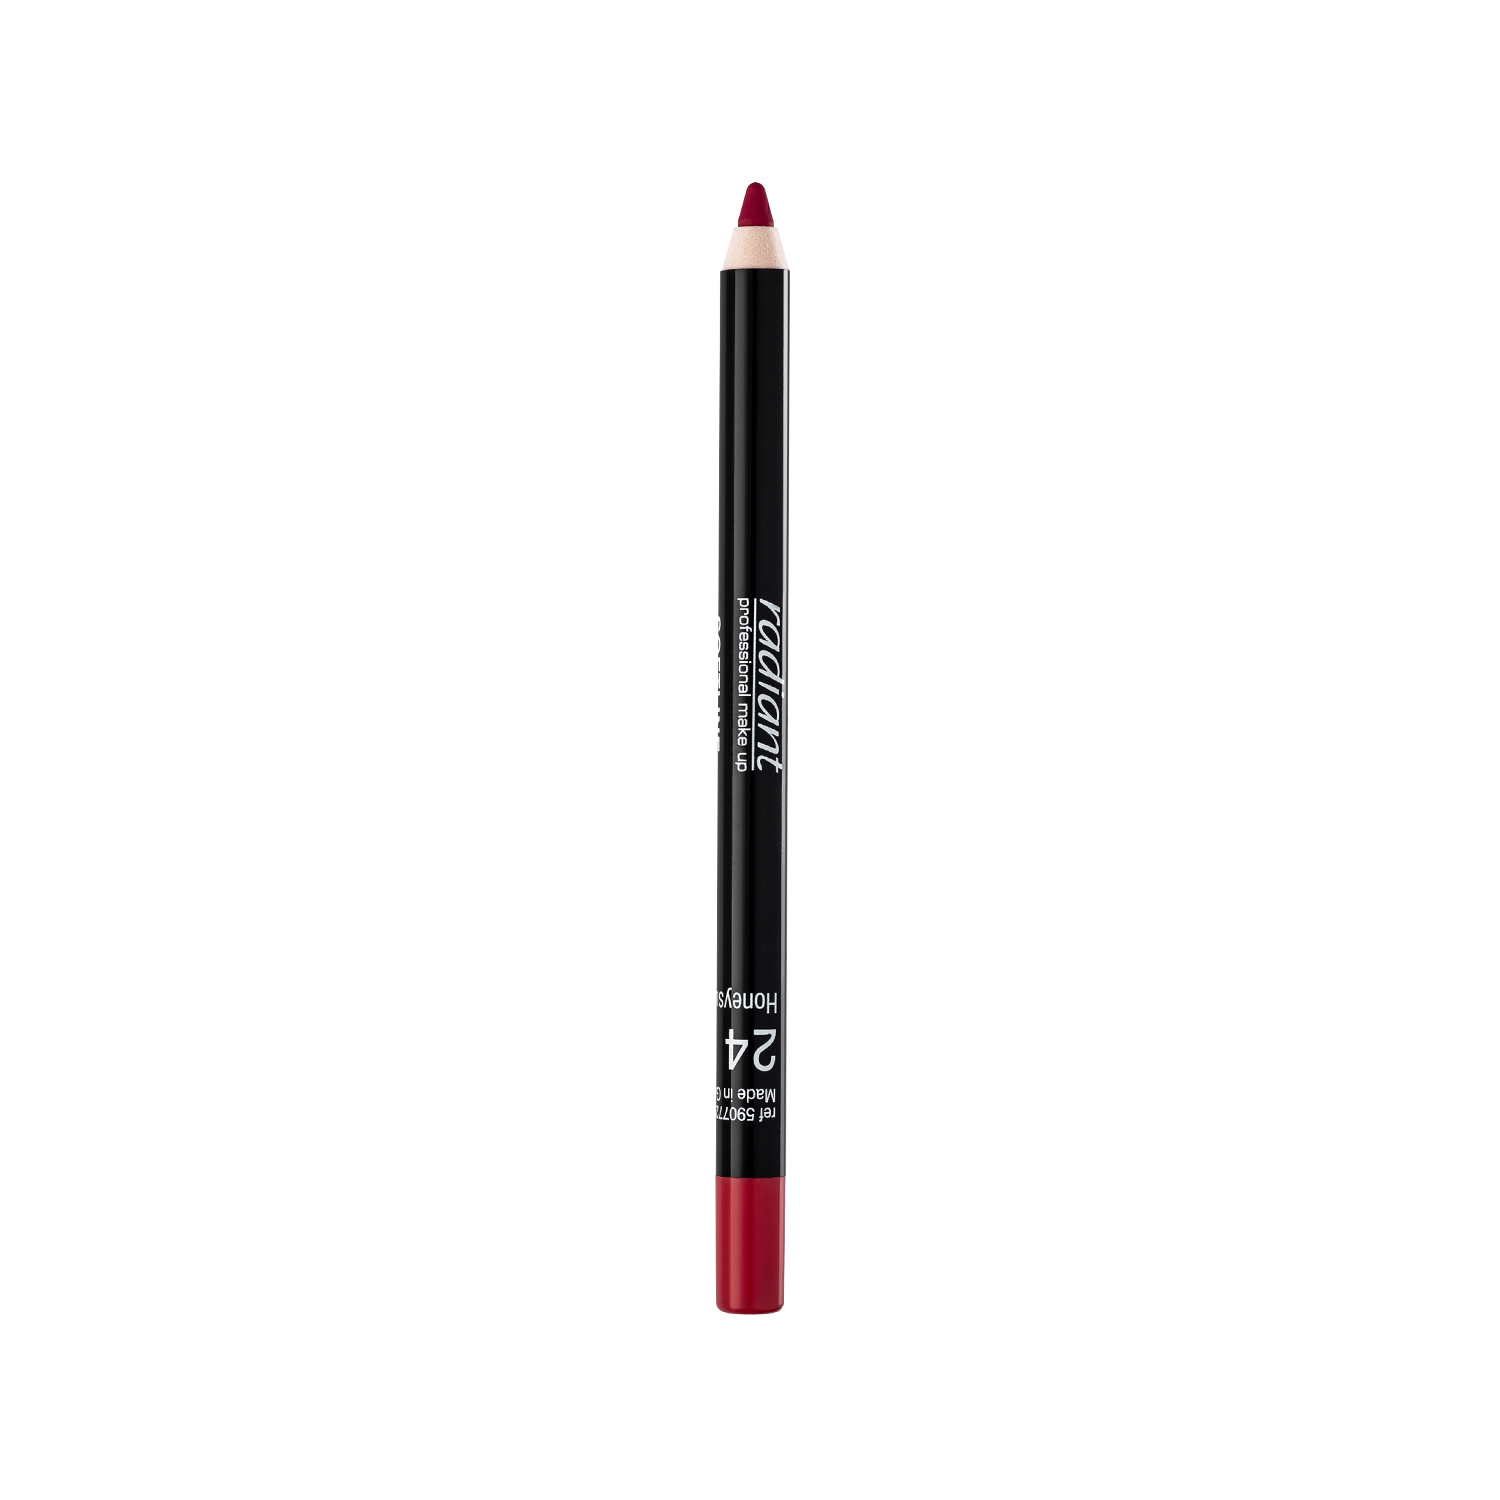 SOFTLINE WATERPROOF LIP PENCIL (24 Honeysuckle)